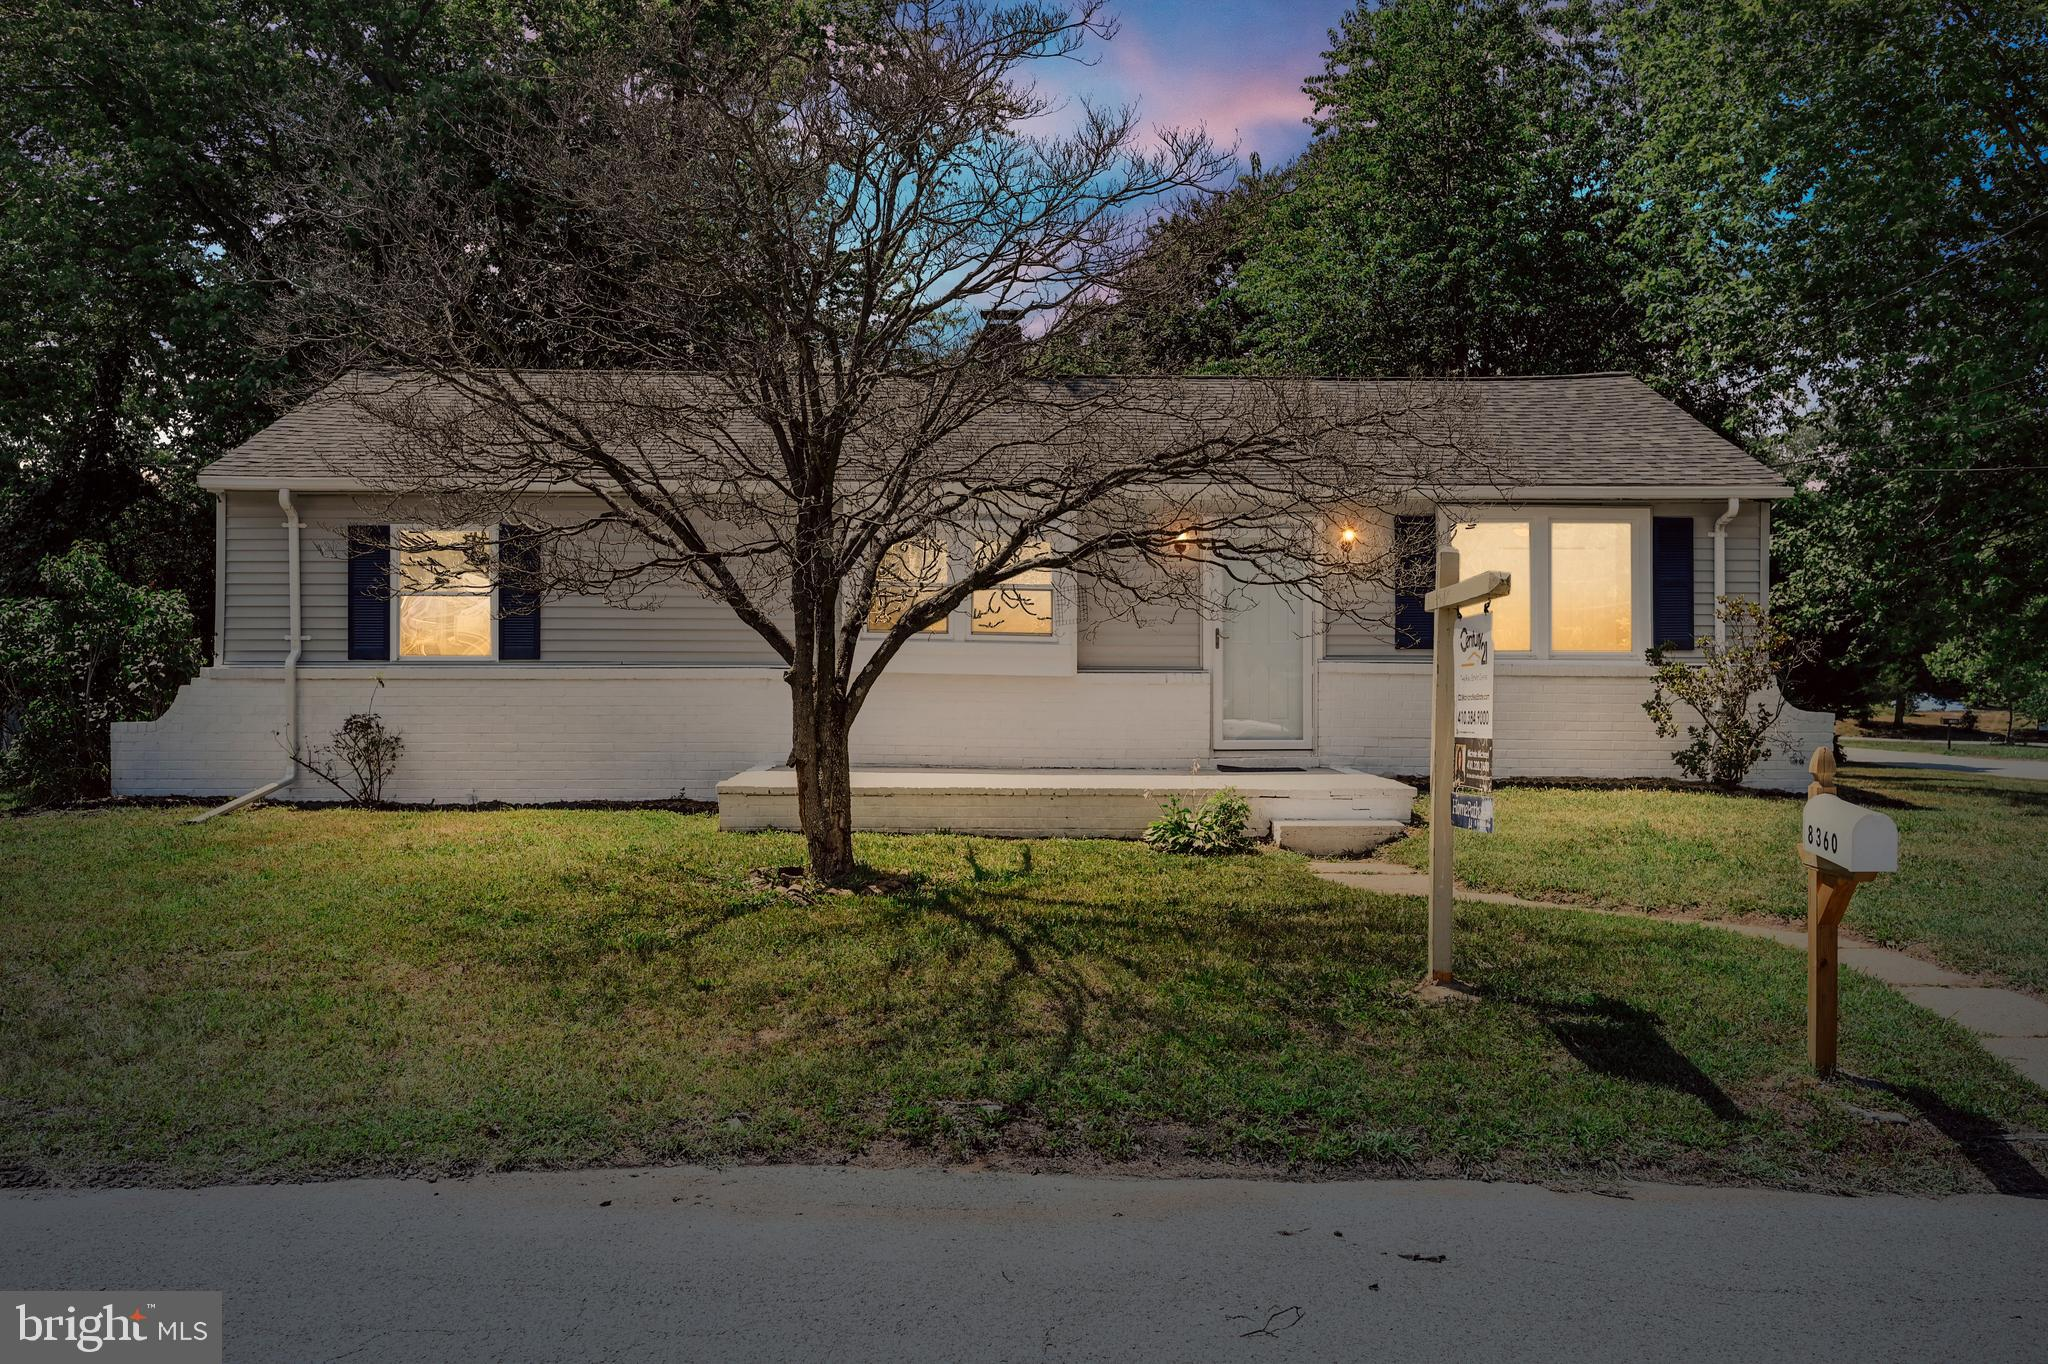 The perfect starter home, or downsize to low-maintenance 1-level living. The home offers 2 bedrooms